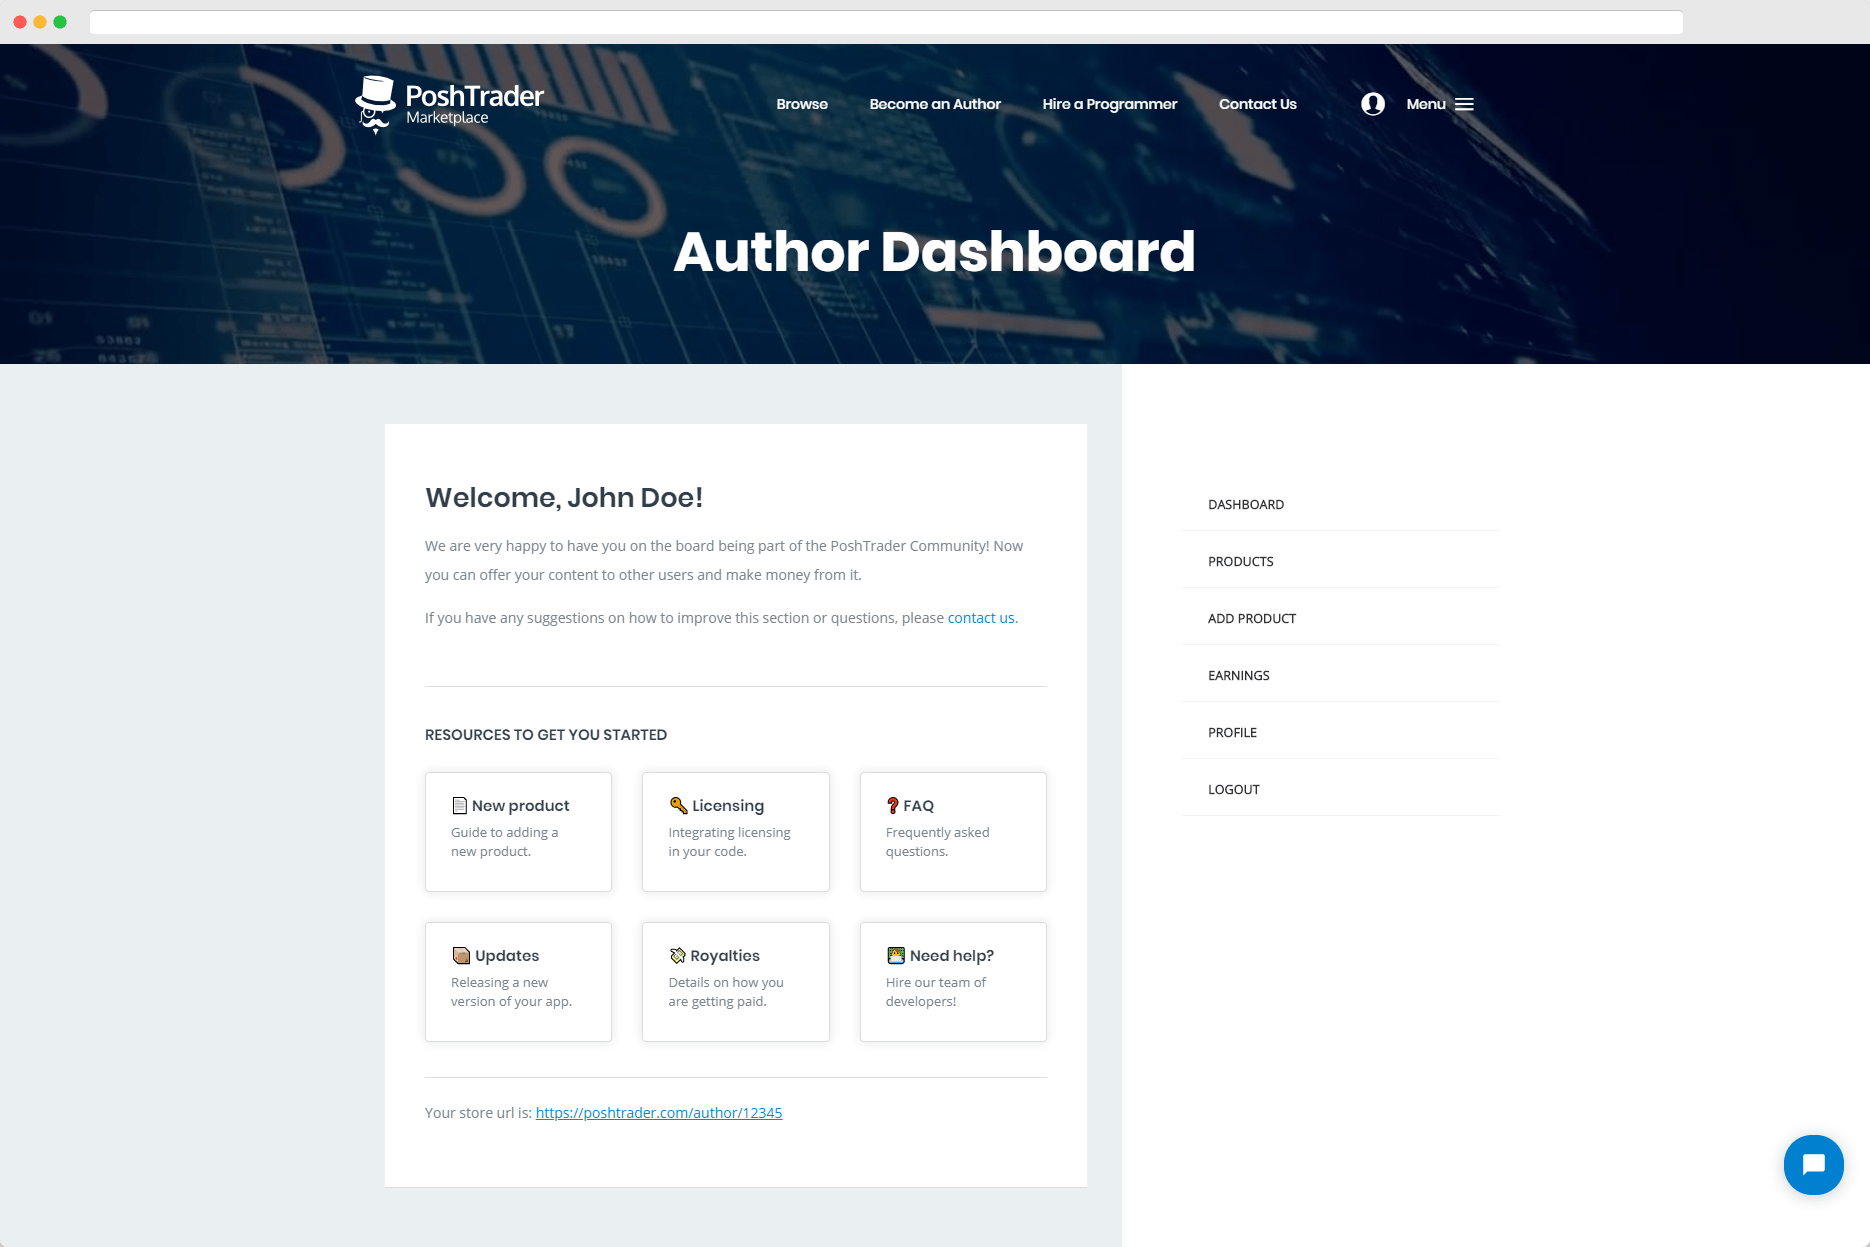 Author Dashboard of PoshTrader Marketplace